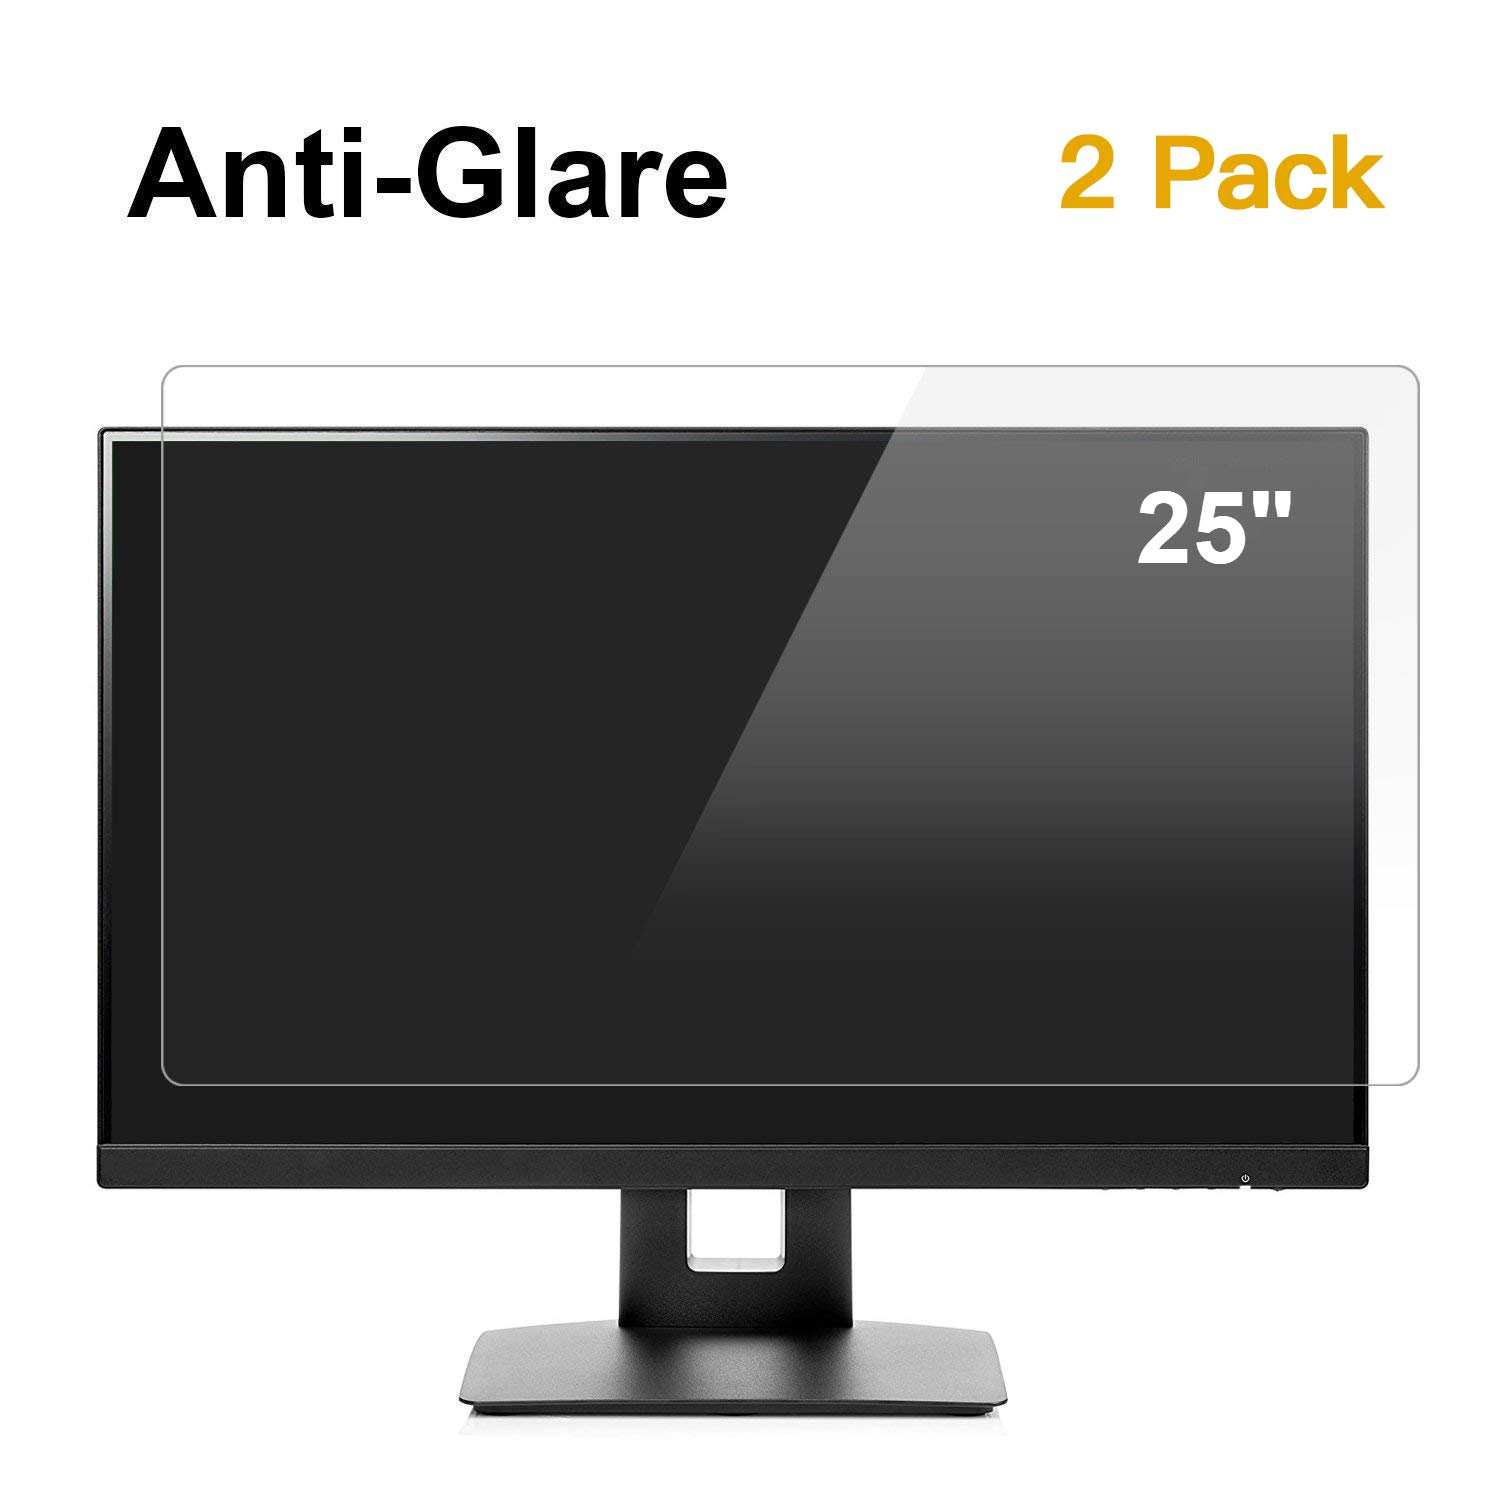 """27/"""" Computer Anti Glare Matte Screen Protector Compatible for 27 Inch Widescreen with 16:9 Aspect Ratio Dell//Asus//Acer//ViewSonic//amsung//Aoc//HP Monitor FORITO 2 Pack"""